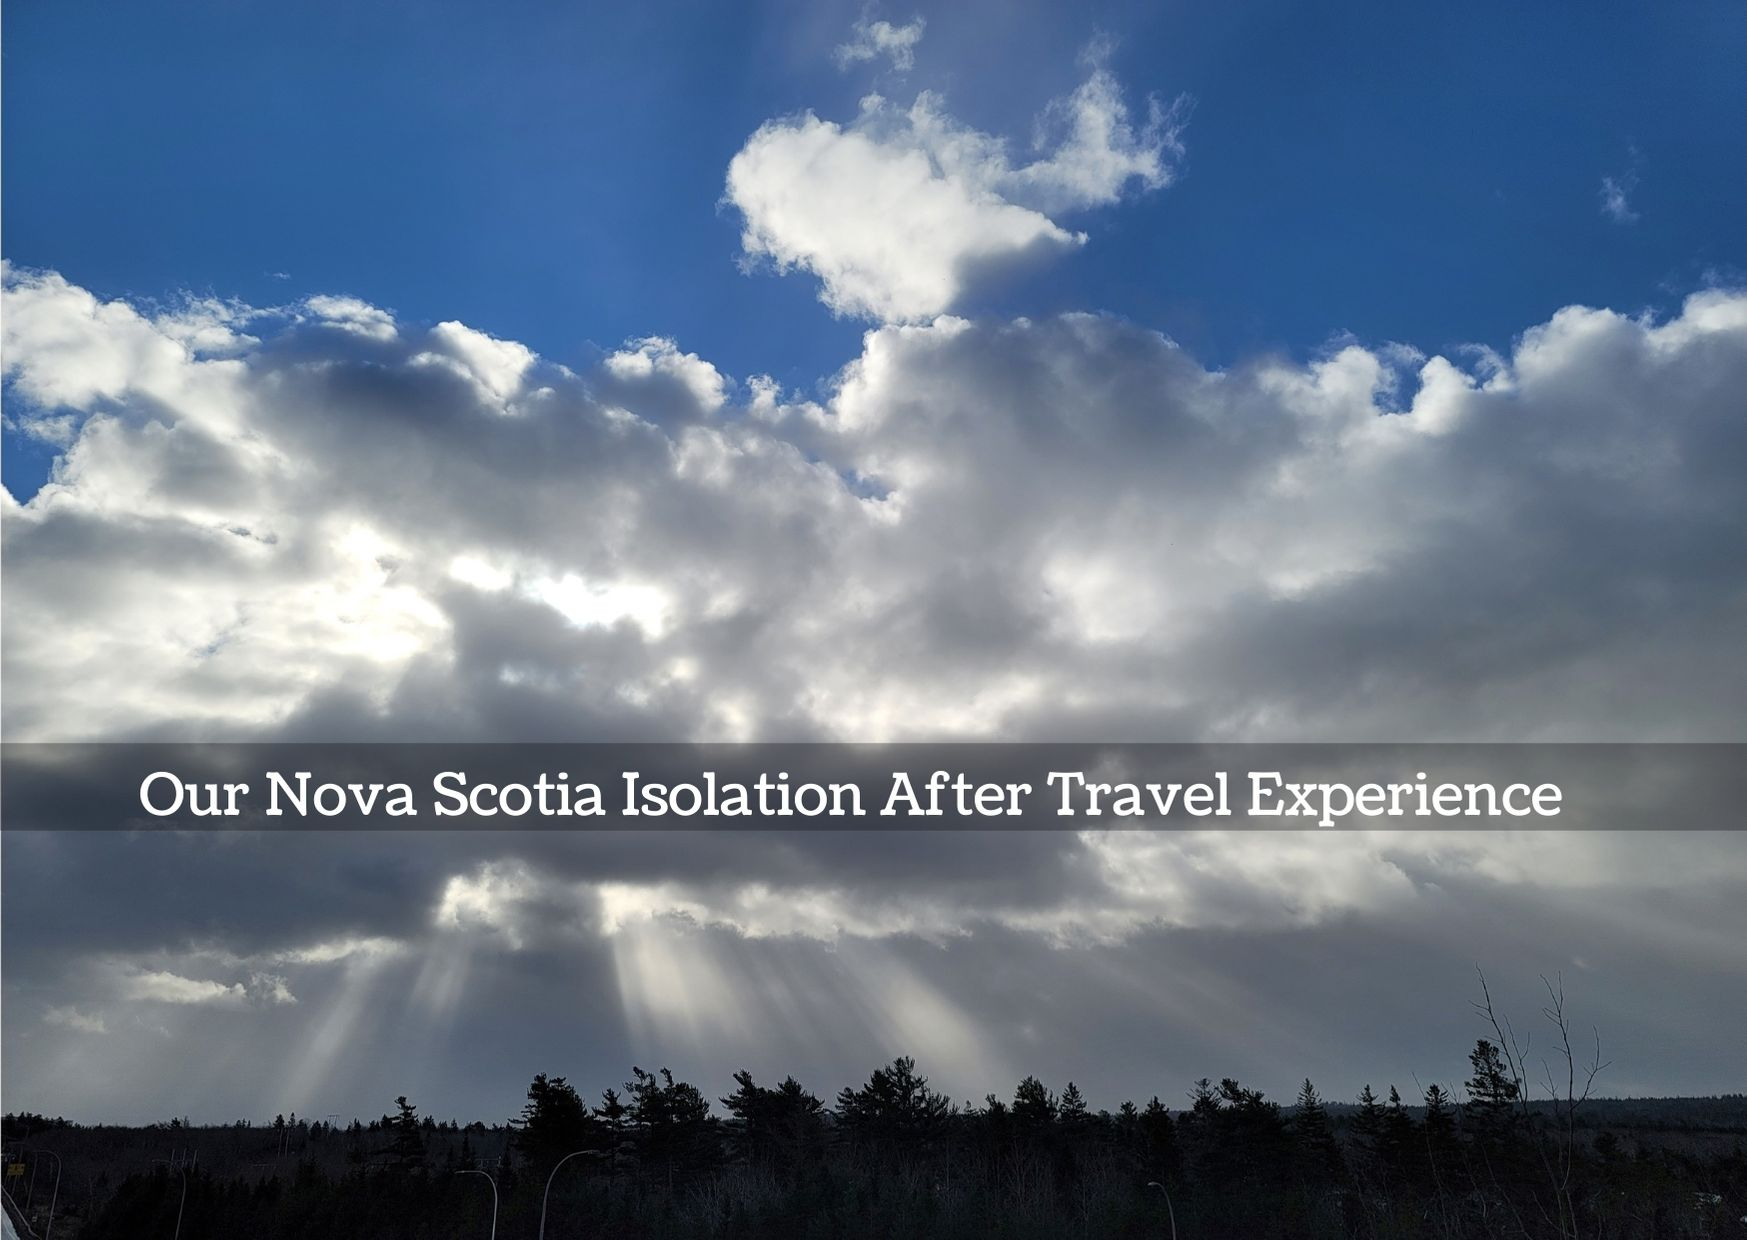 Clouds in sky Self isolation Nova Scotia with kids